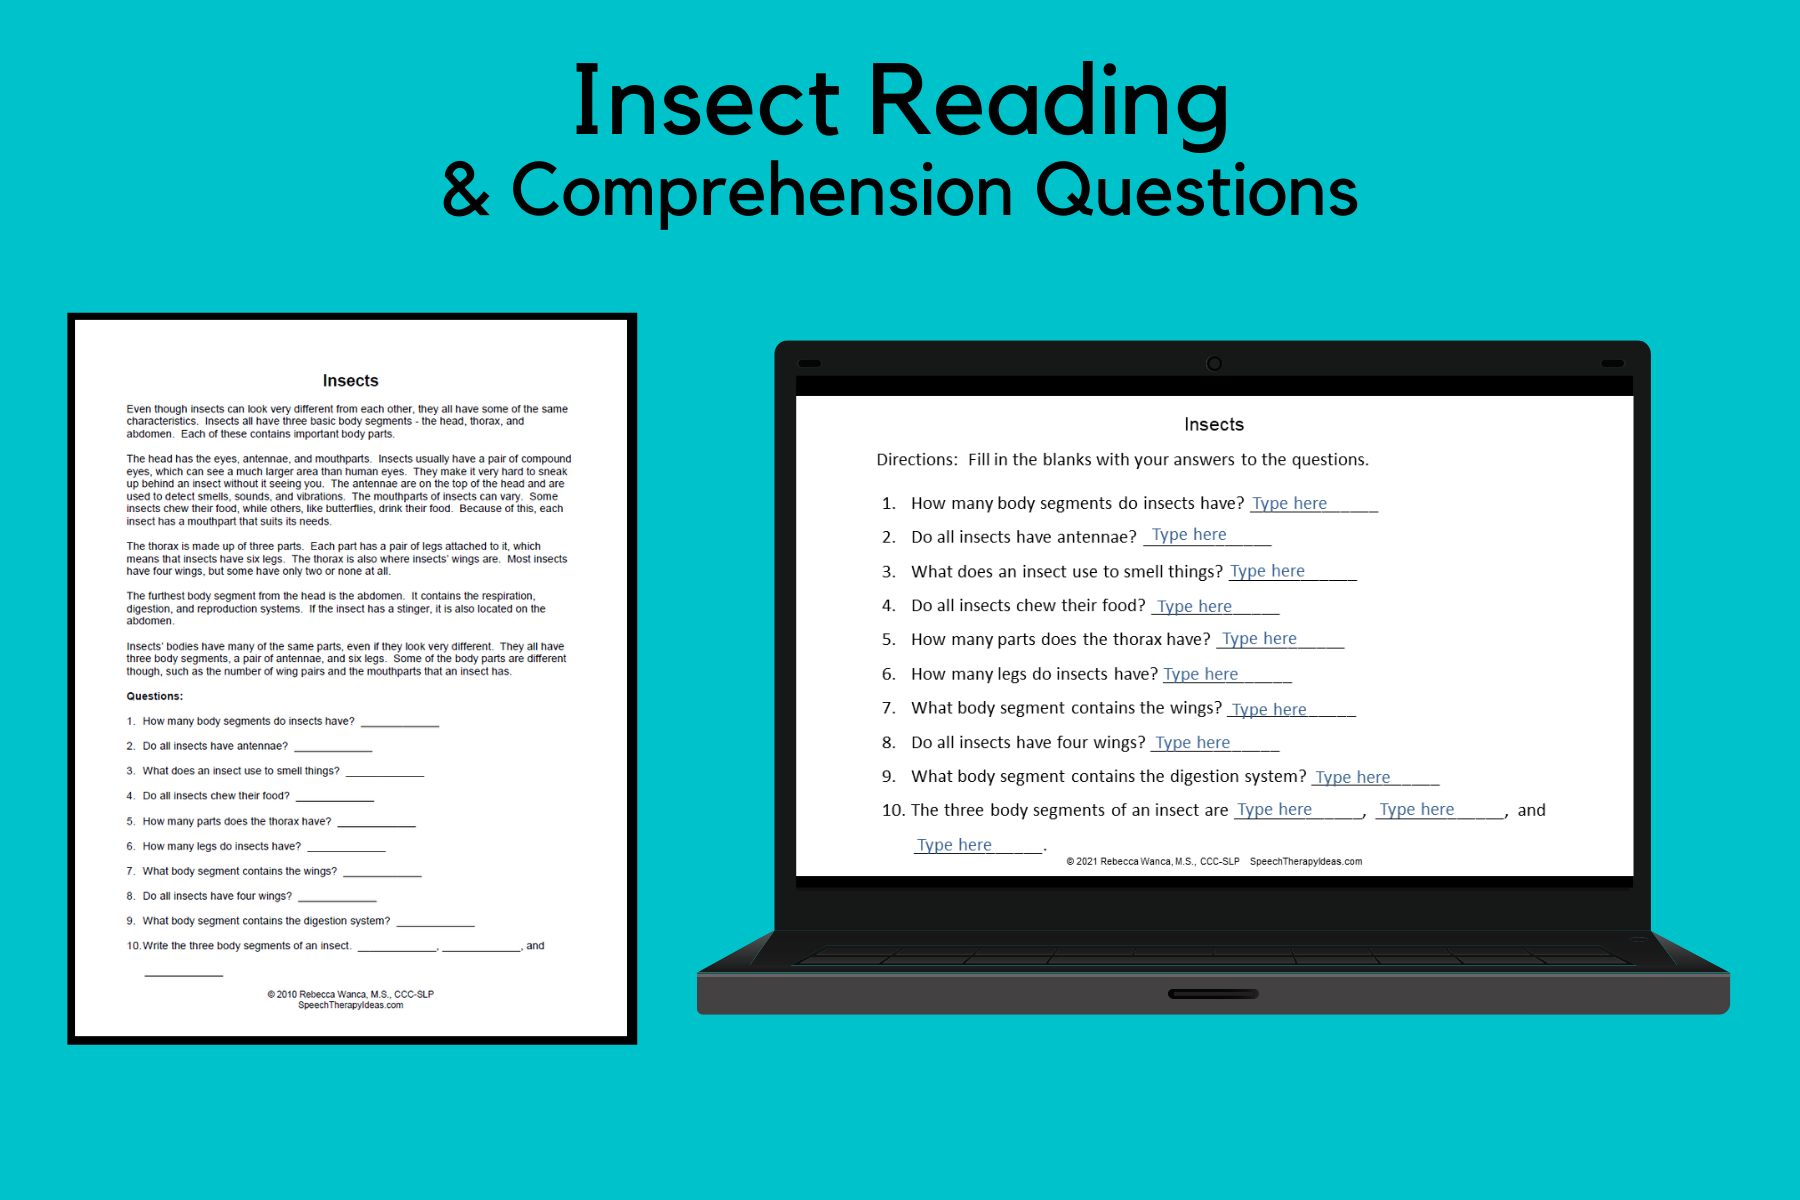 Insect Reading Sample And Comprehension Questions